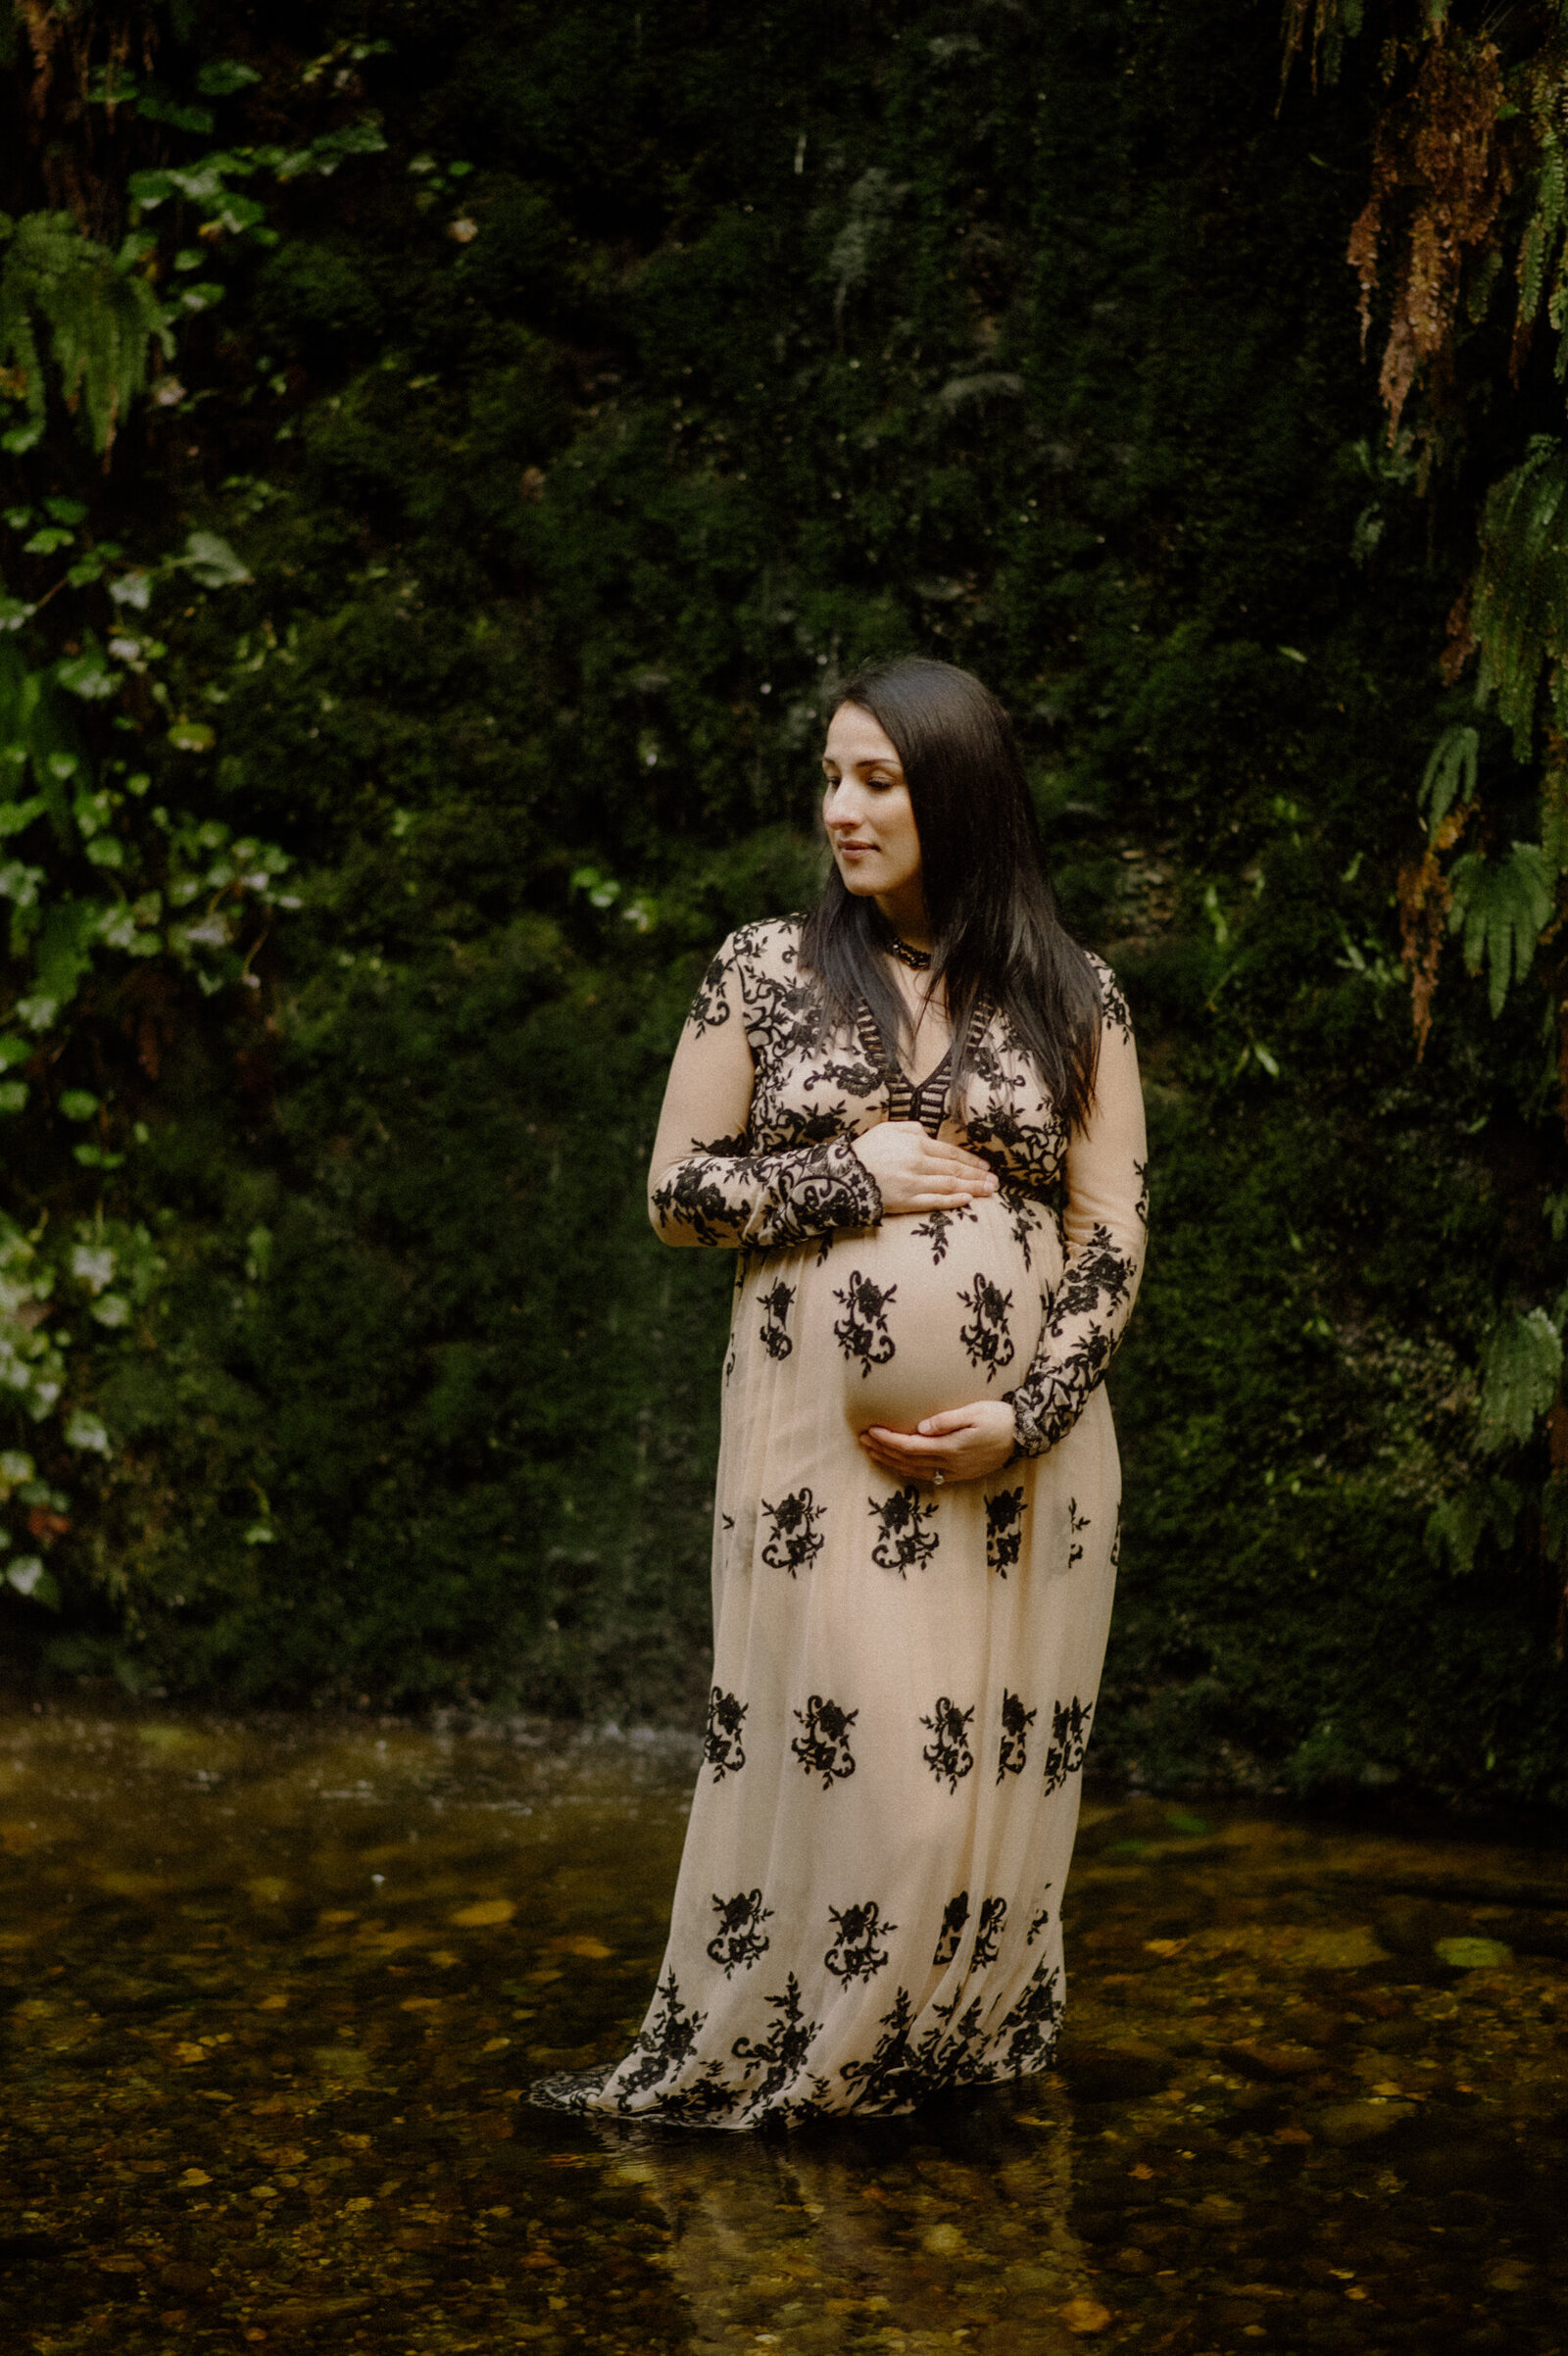 fern-canyon-maternity-waterfall-embroidered-gown-2